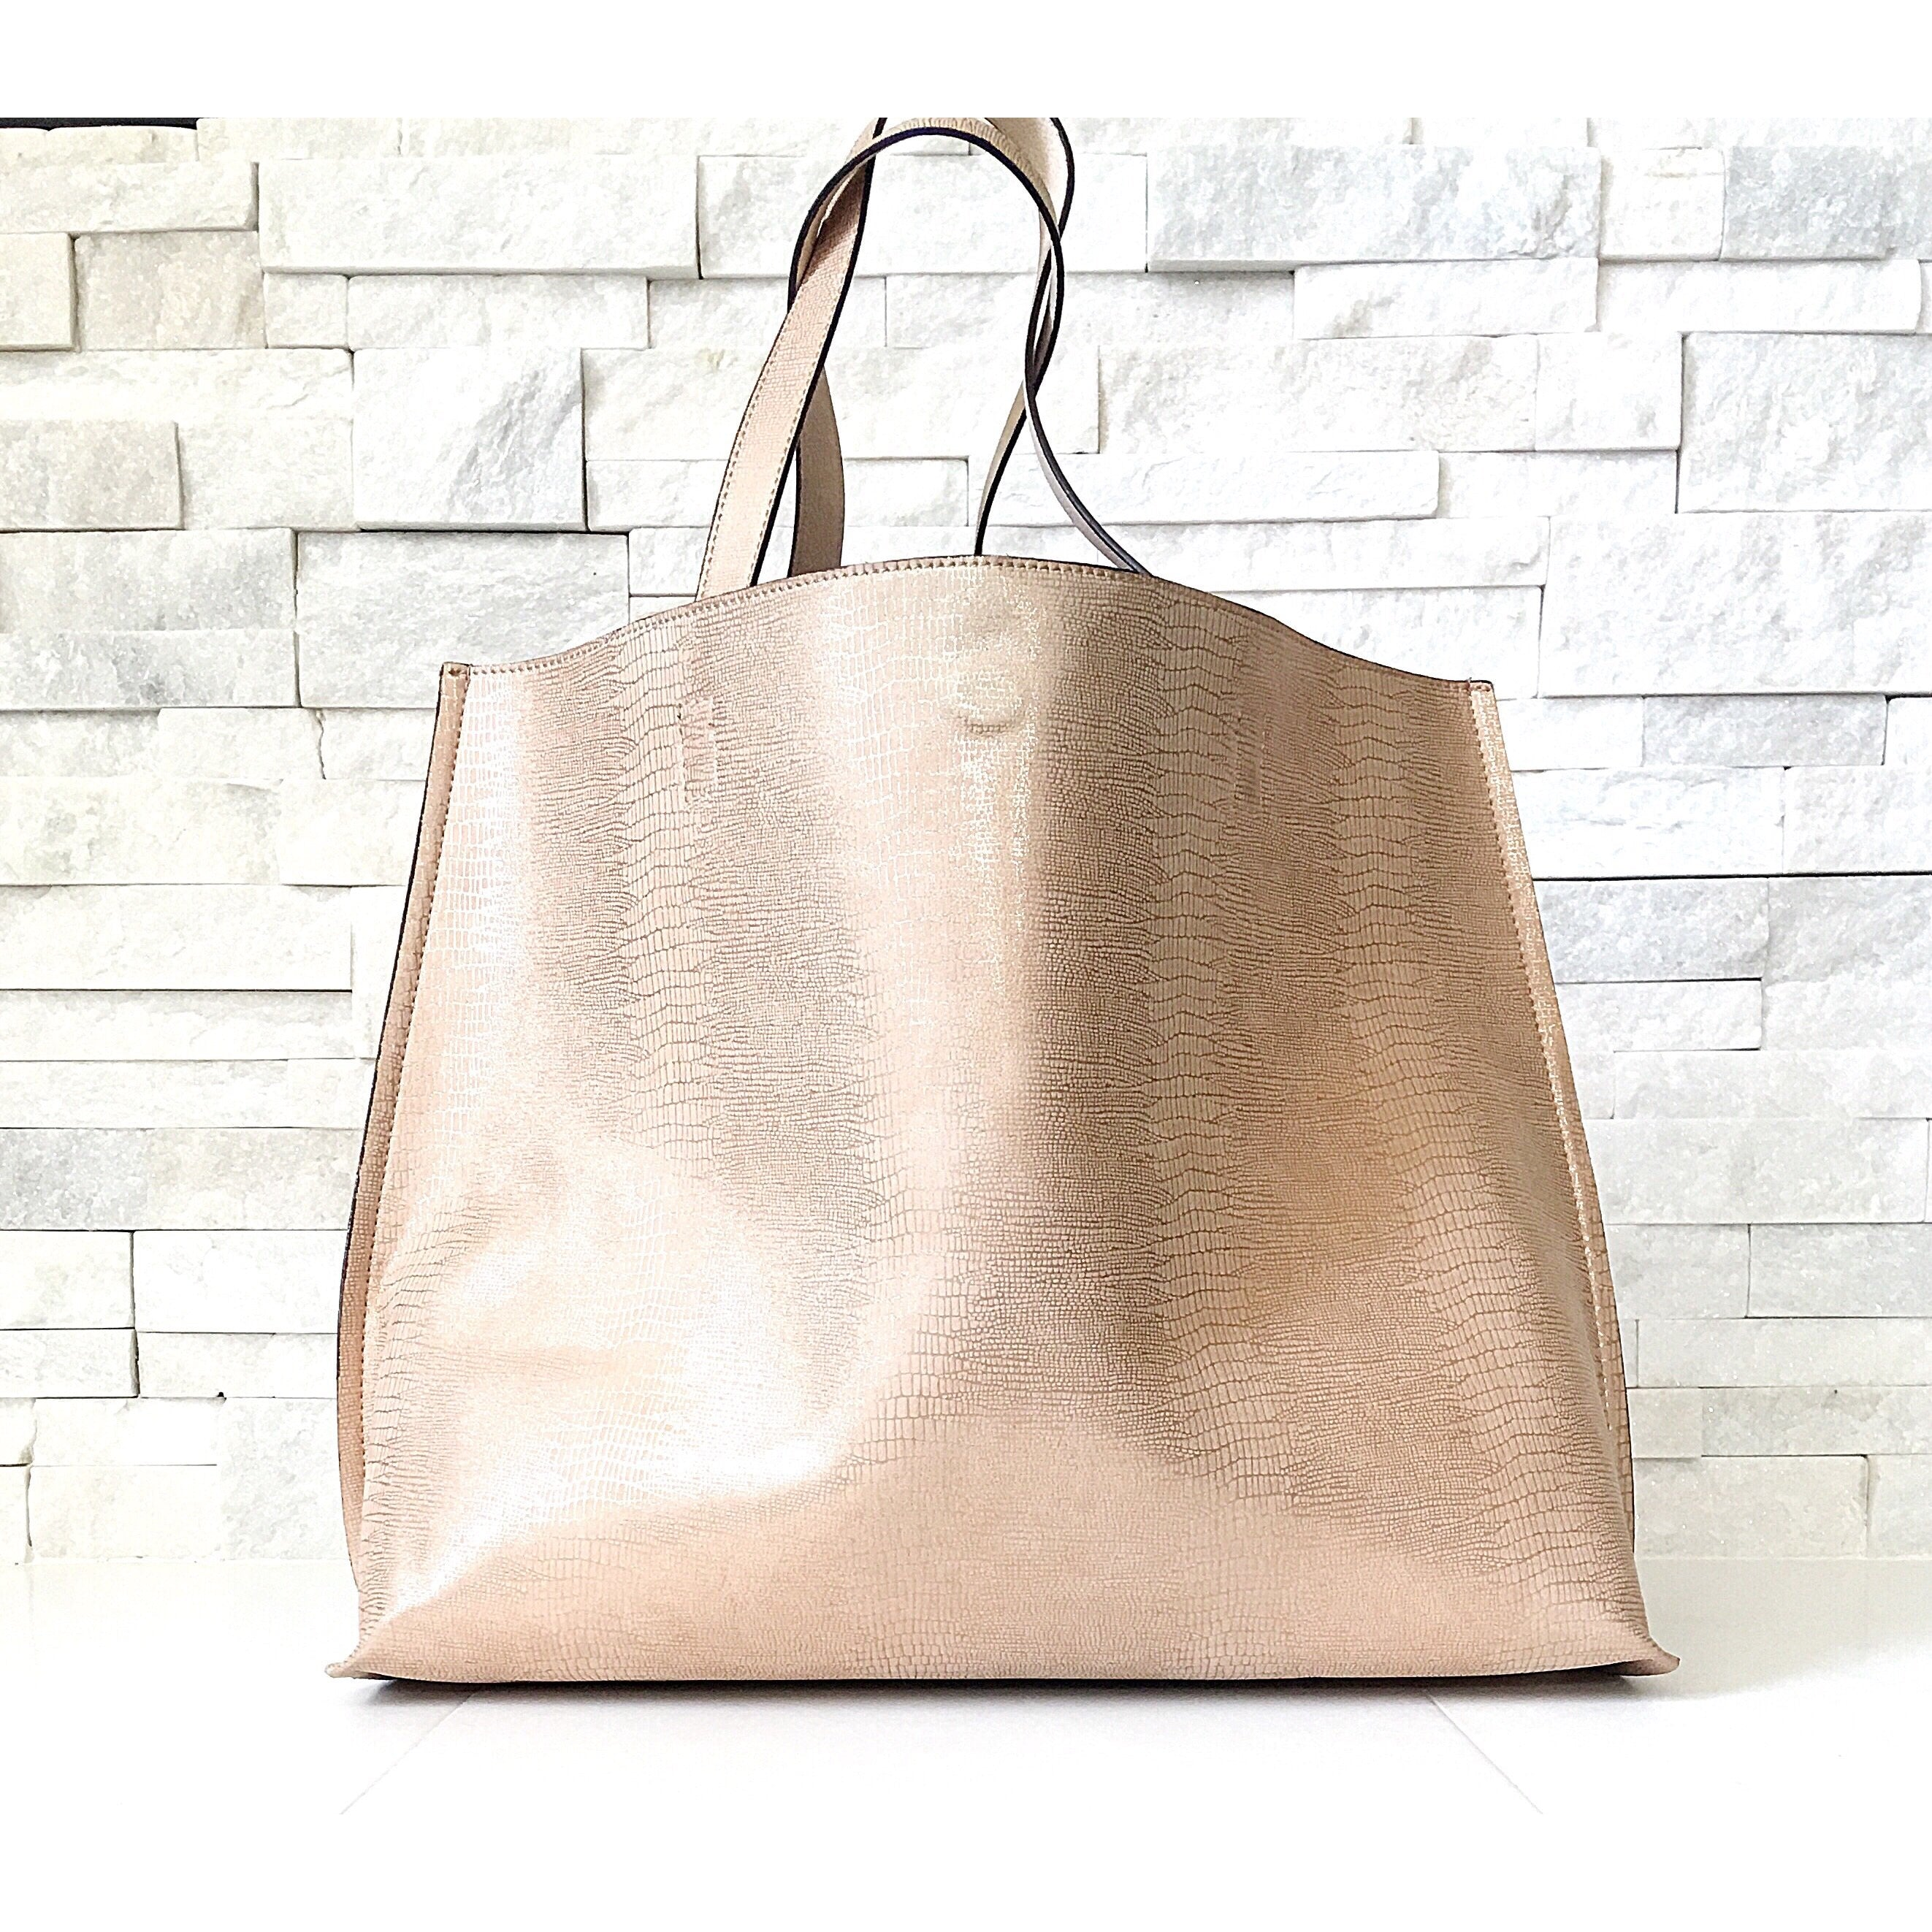 Reversible Tote in Rose Gold by Street Level